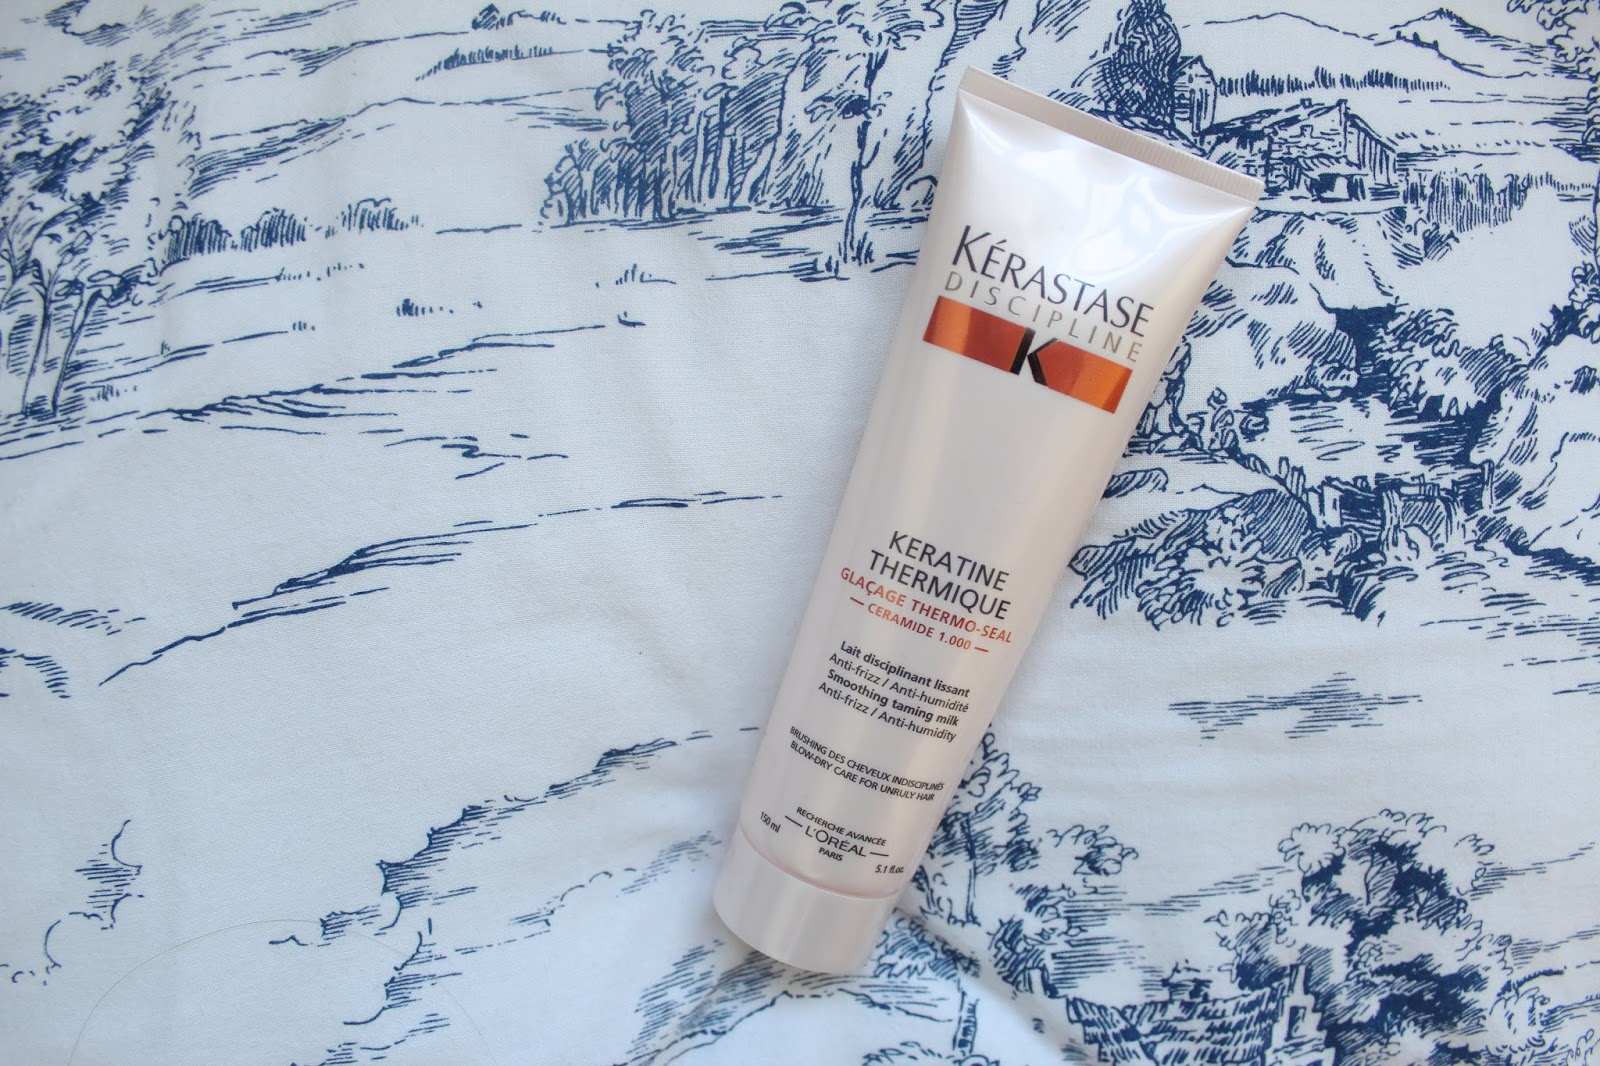 kirstie pickering hair hairstyle hair treatment heat protect kerastase keratine thermique thermo-seal smoothing taming milk review tried and tested beauty bblogger bbloggers instagram potd ikea twitter